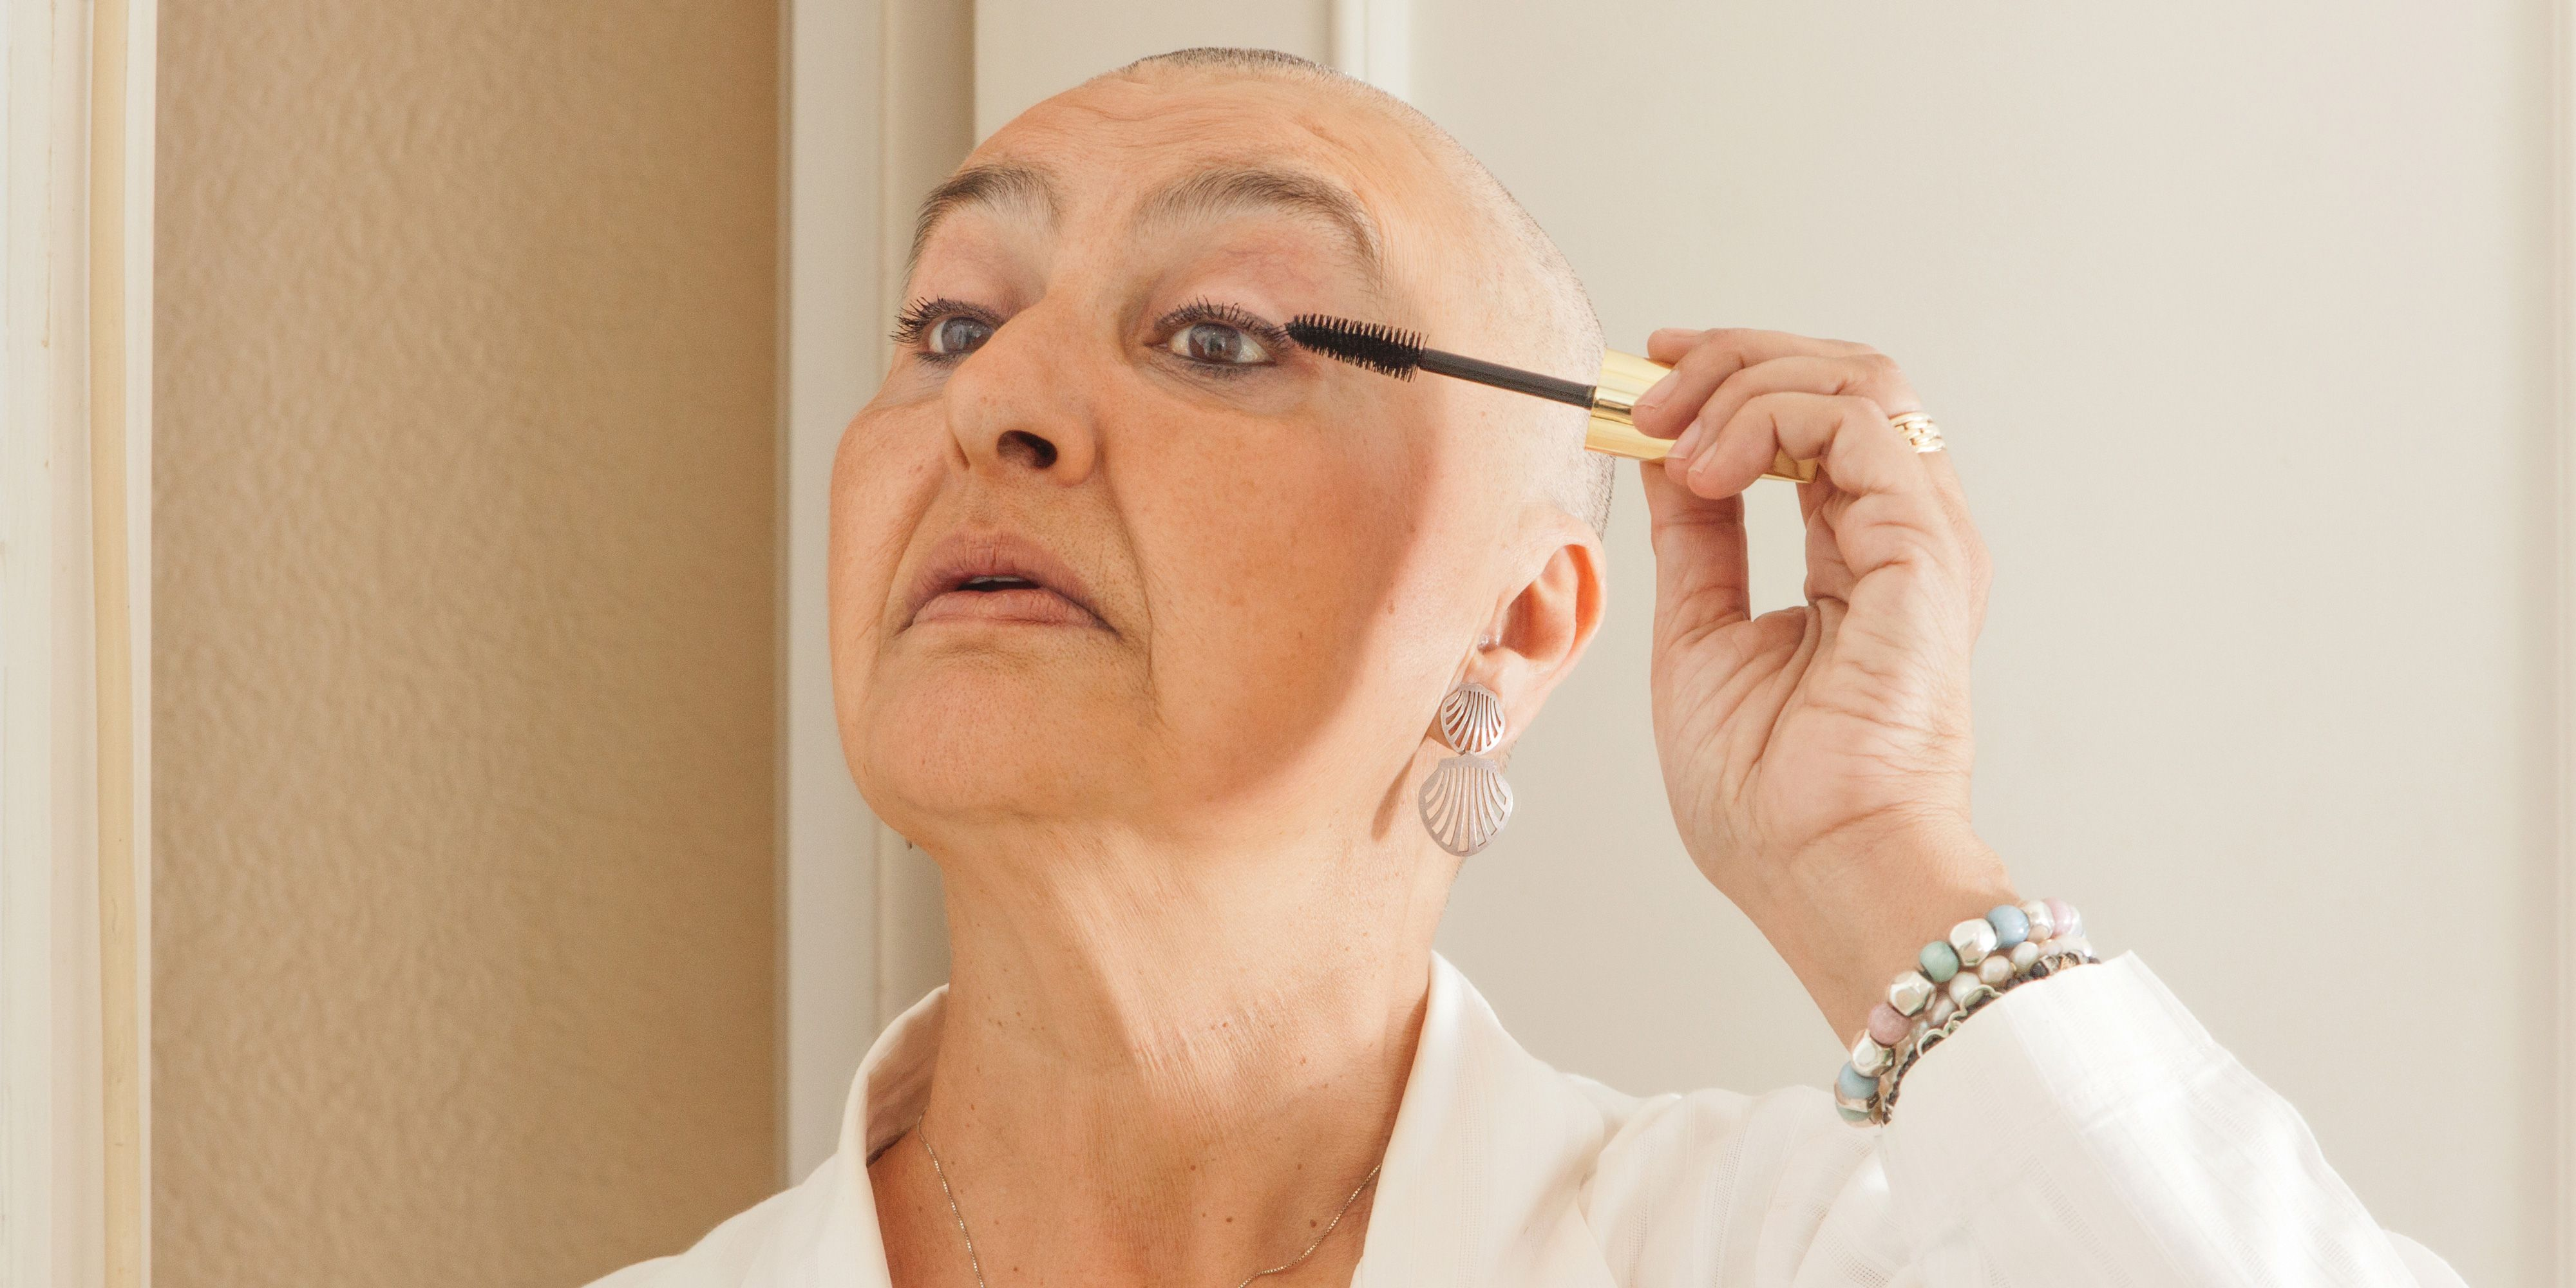 7 things you should know about breast cancer